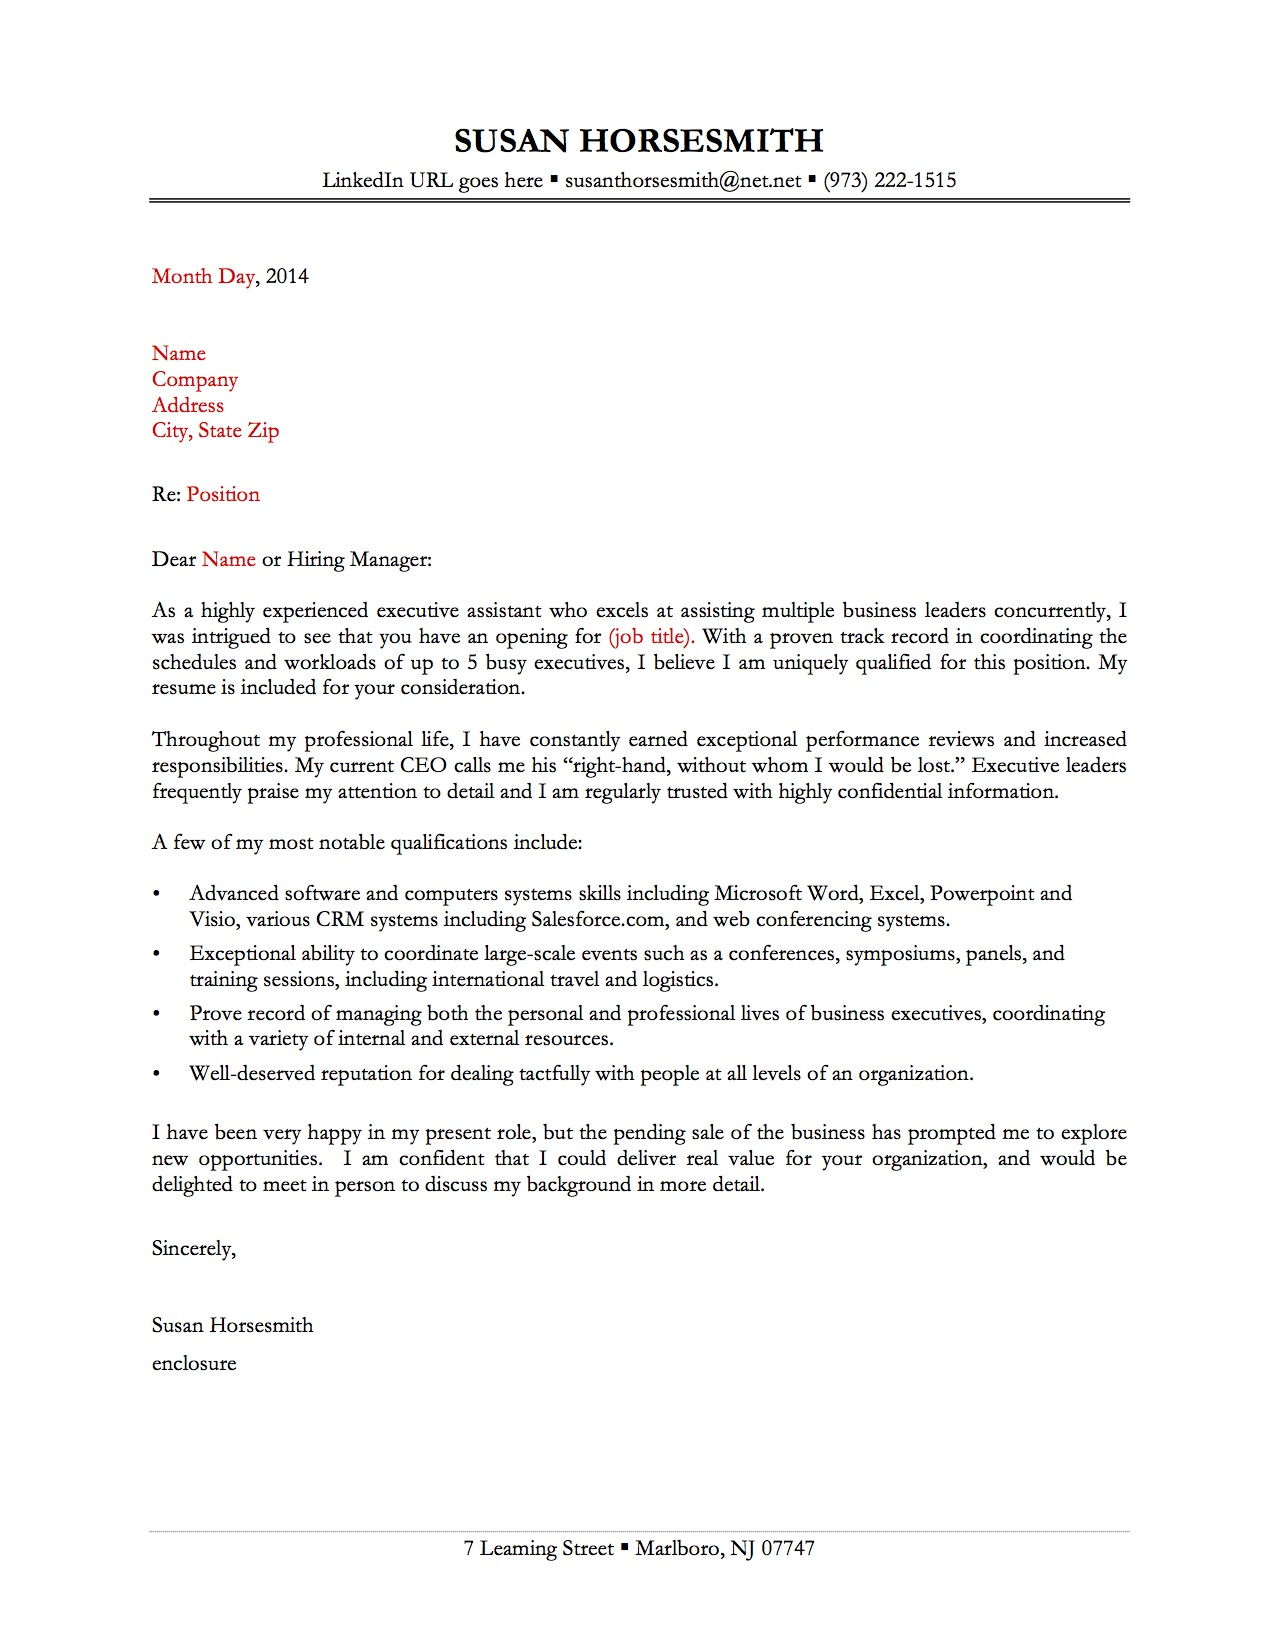 Two Great Cover Letter Examples – Sample Cover Letter Example for Sale